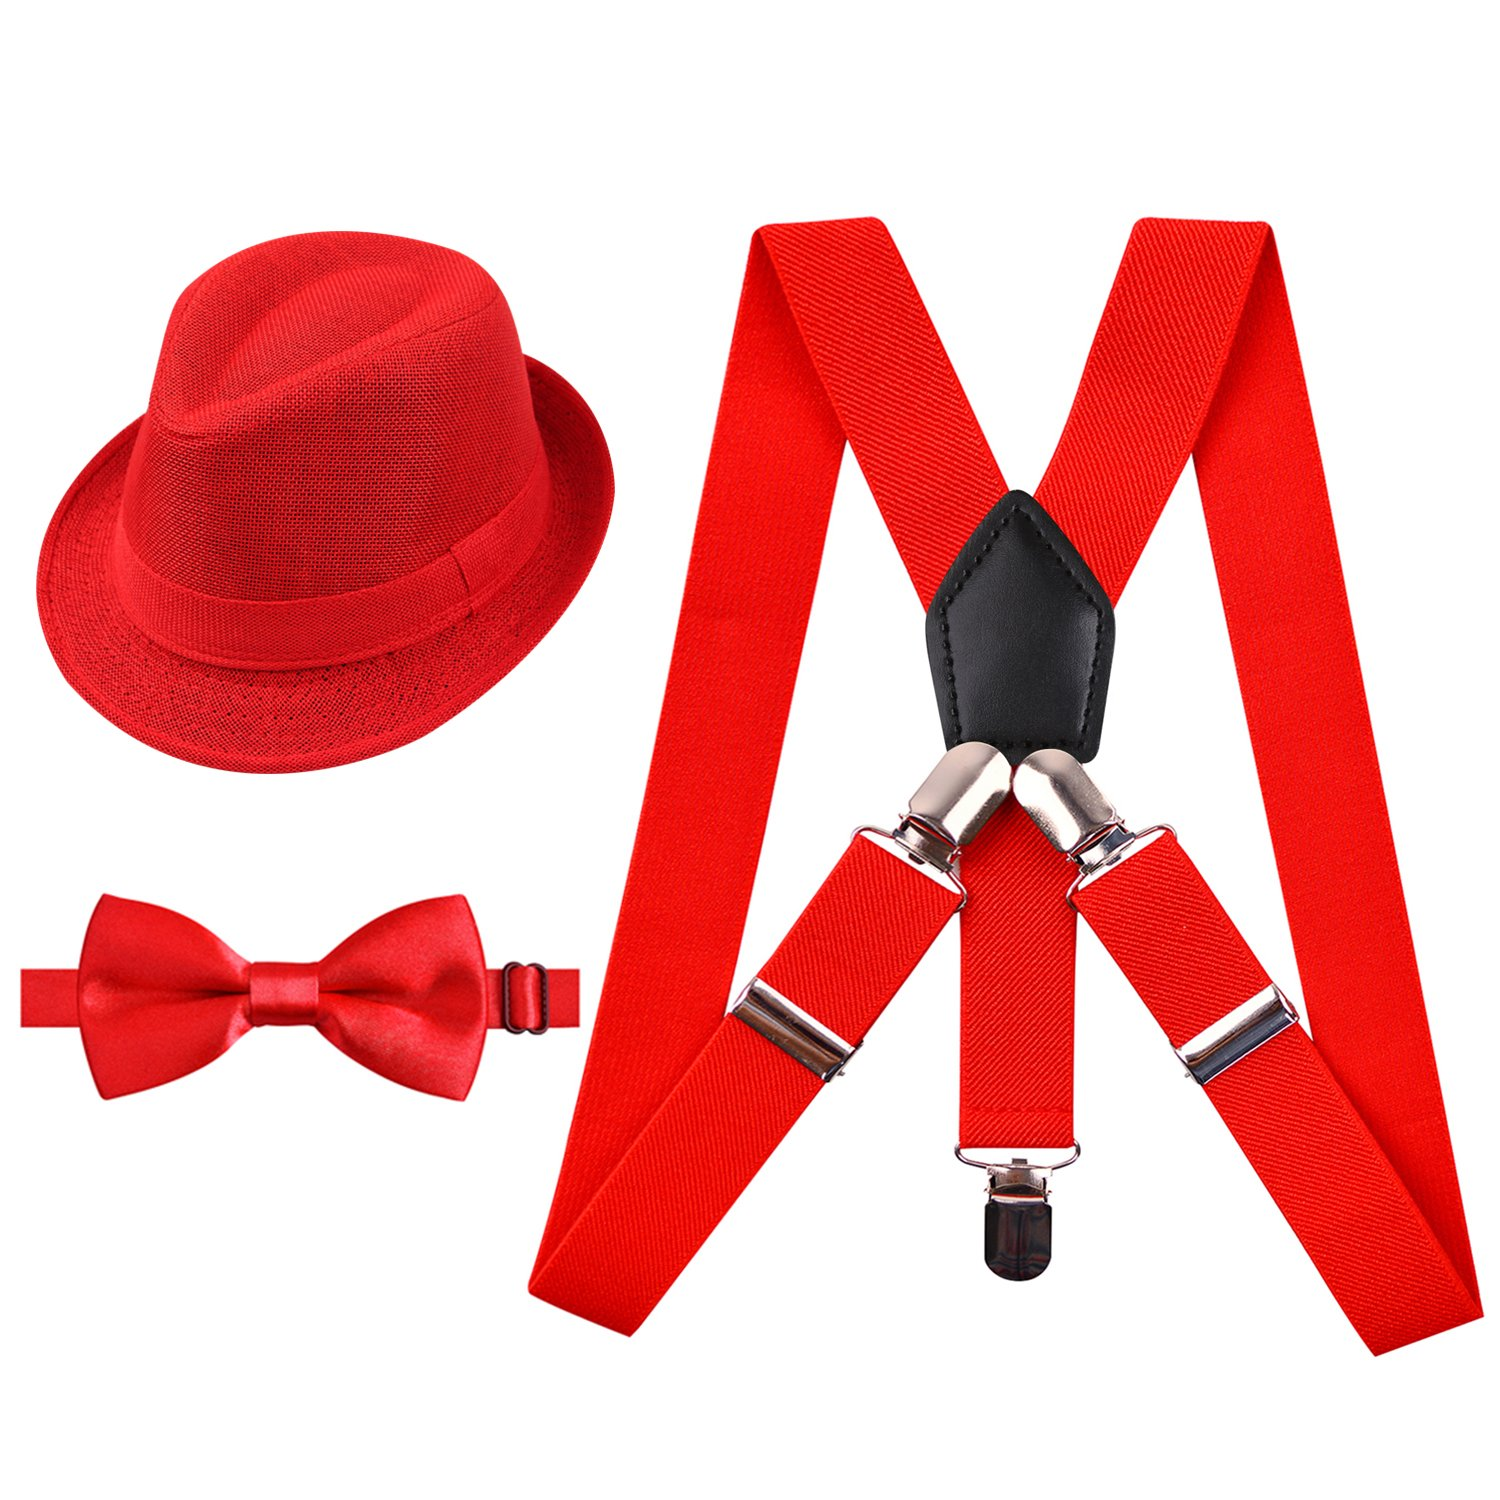 Alizeal 1 inch Suspender and Bow Tie Set with Matched Hat for Kids Black FS047-Black